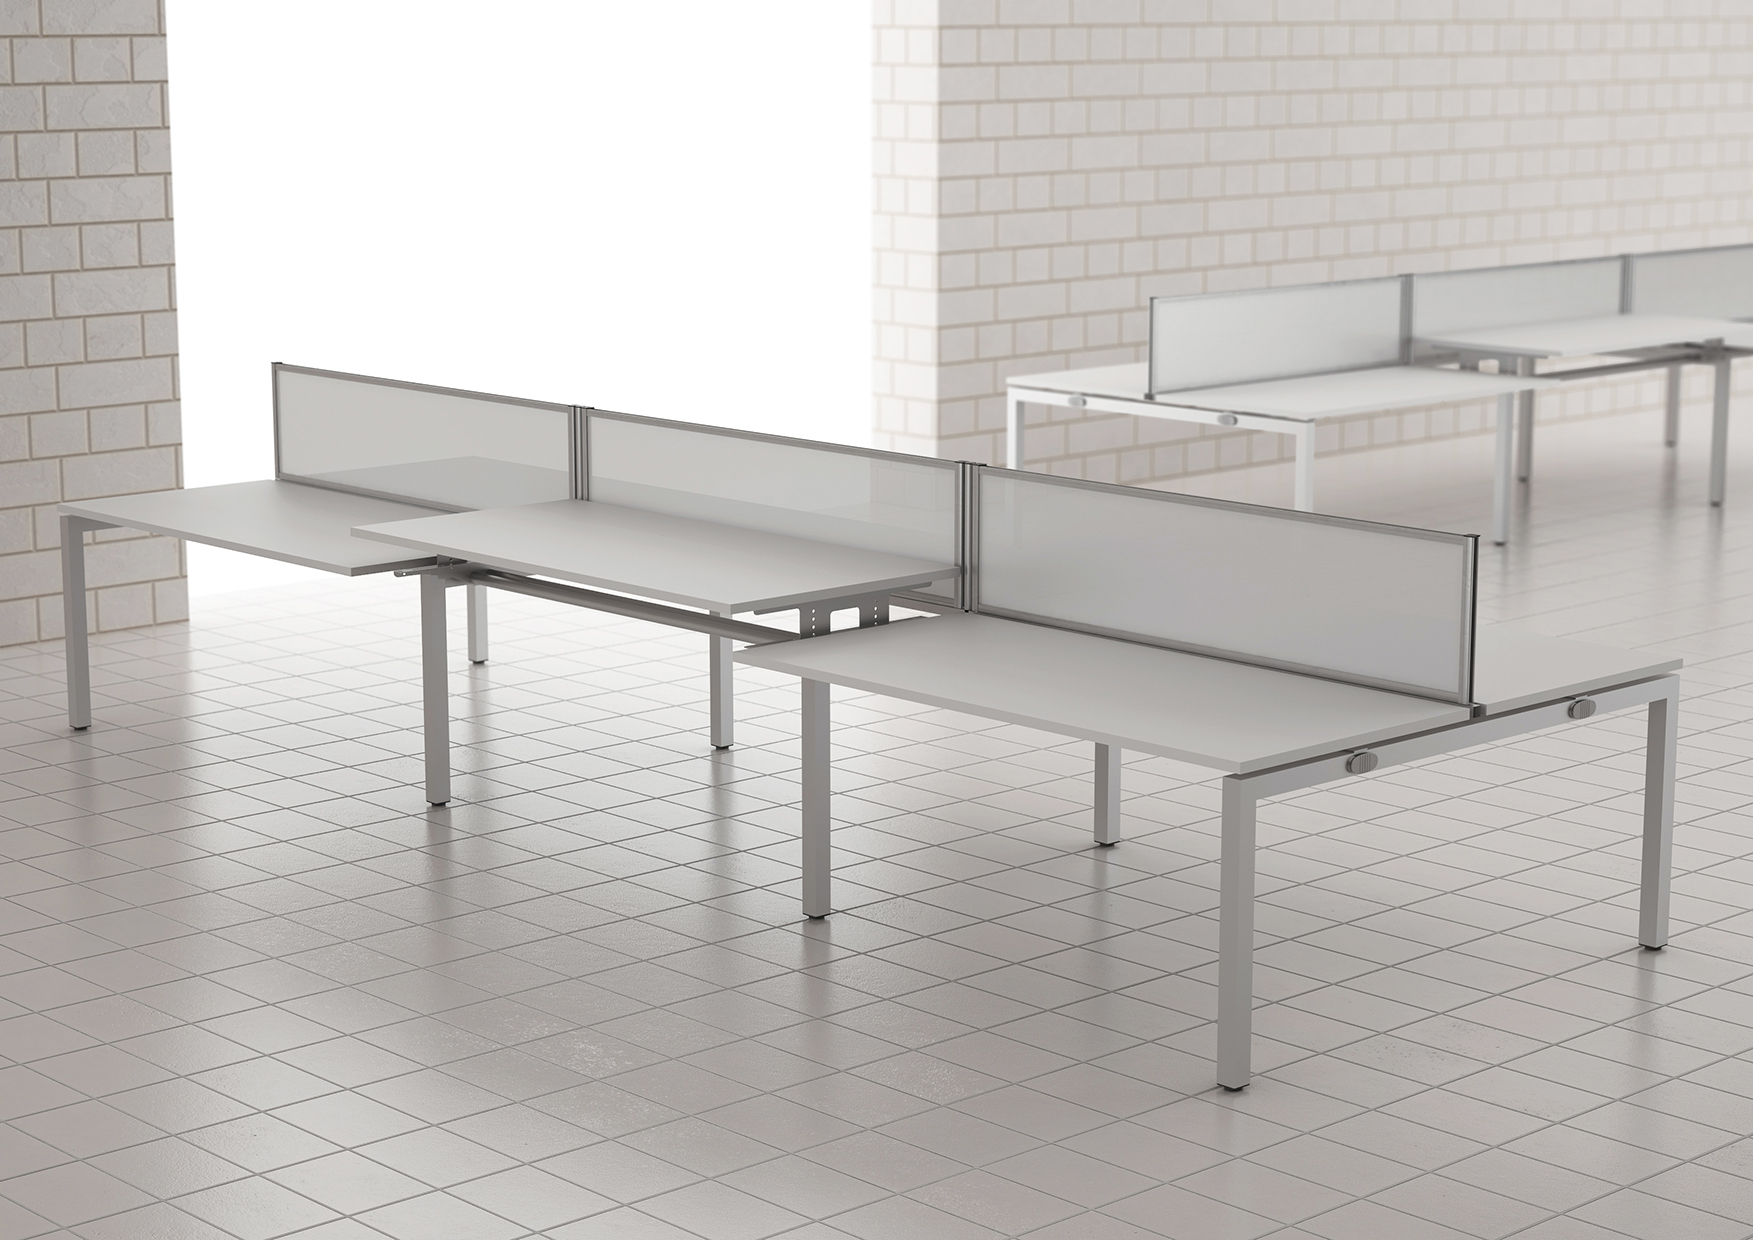 Bench²-Manual-Height-Adjustable-Desks-Example-Set-Up-with-Screens